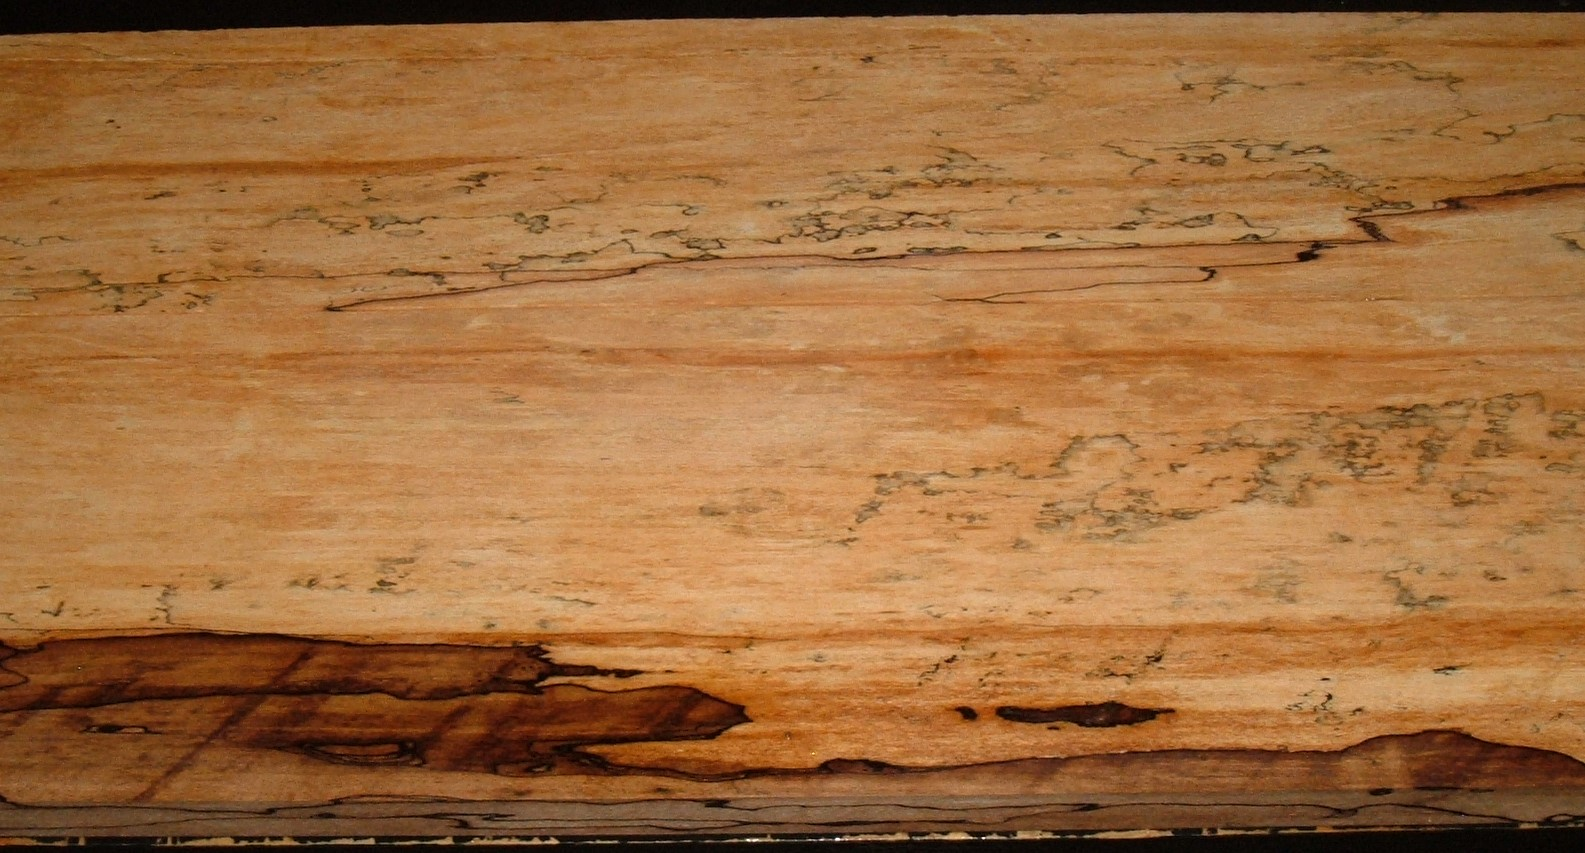 SM2005-31JJ, 2 bds, 15/16x5-1/8x45, 15/16x7x45, Spalted Hard Maple